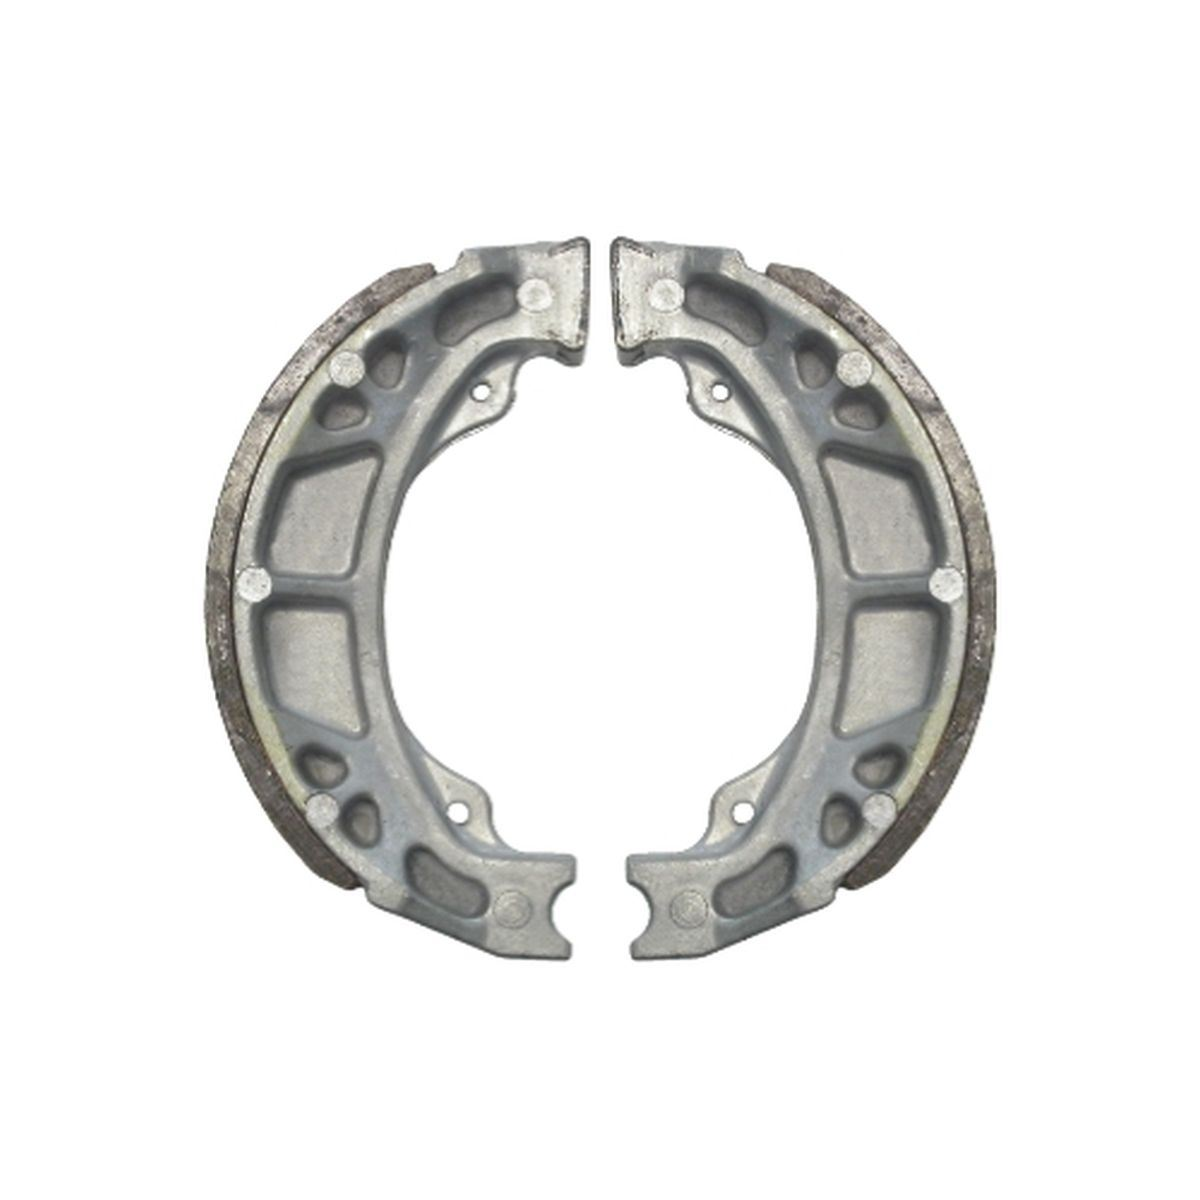 Brake Shoes Rear for 1984 Honda CF 70 Chaly